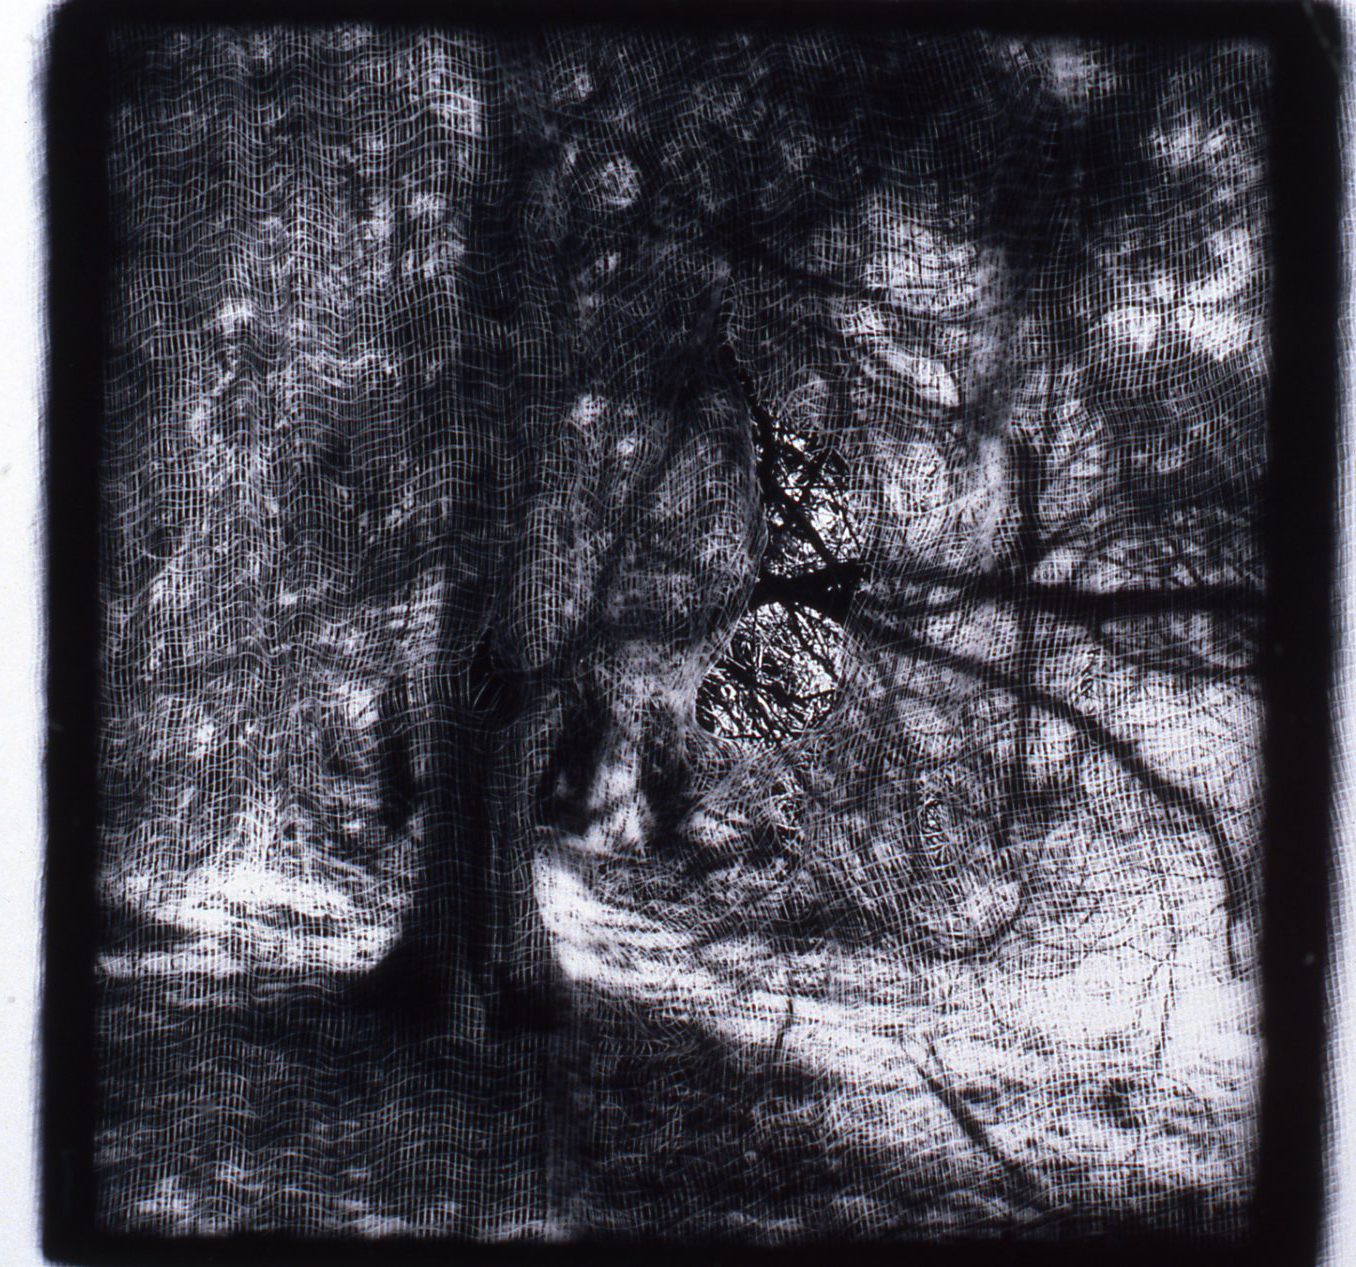 Passages Tree  , Gelatin Silver print, 10x10 inches, 1989-1990, unique print